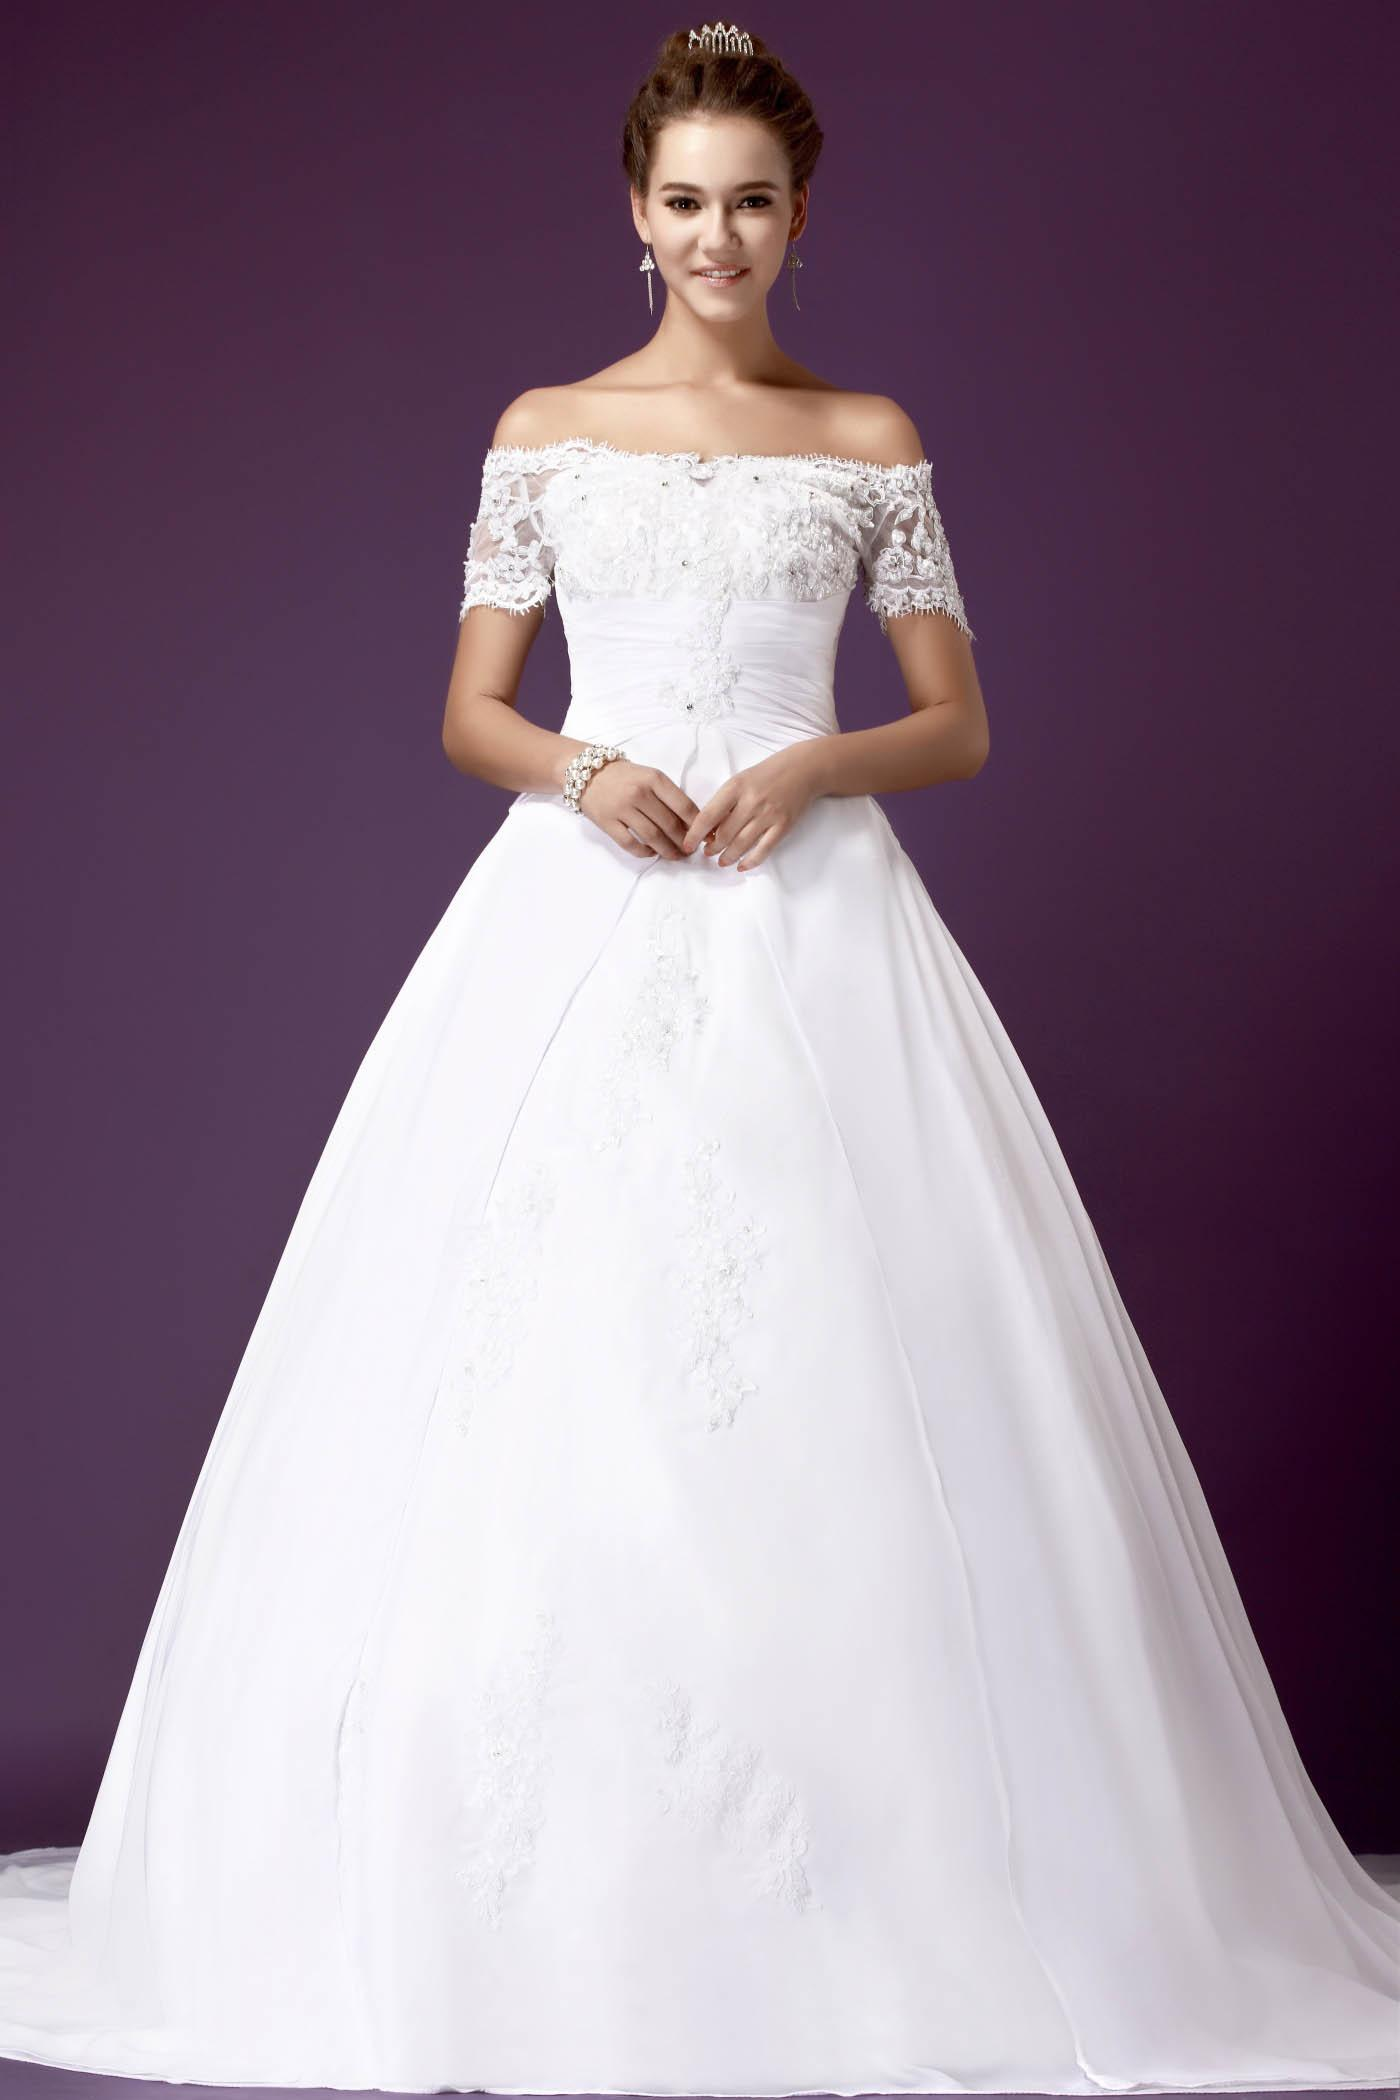 2013 Summer Off Shoulder Beaded Lace White Chapel Train Ball Gown Wedding Dresses Bridal Gowns Wd293 Online Womens From Promtime